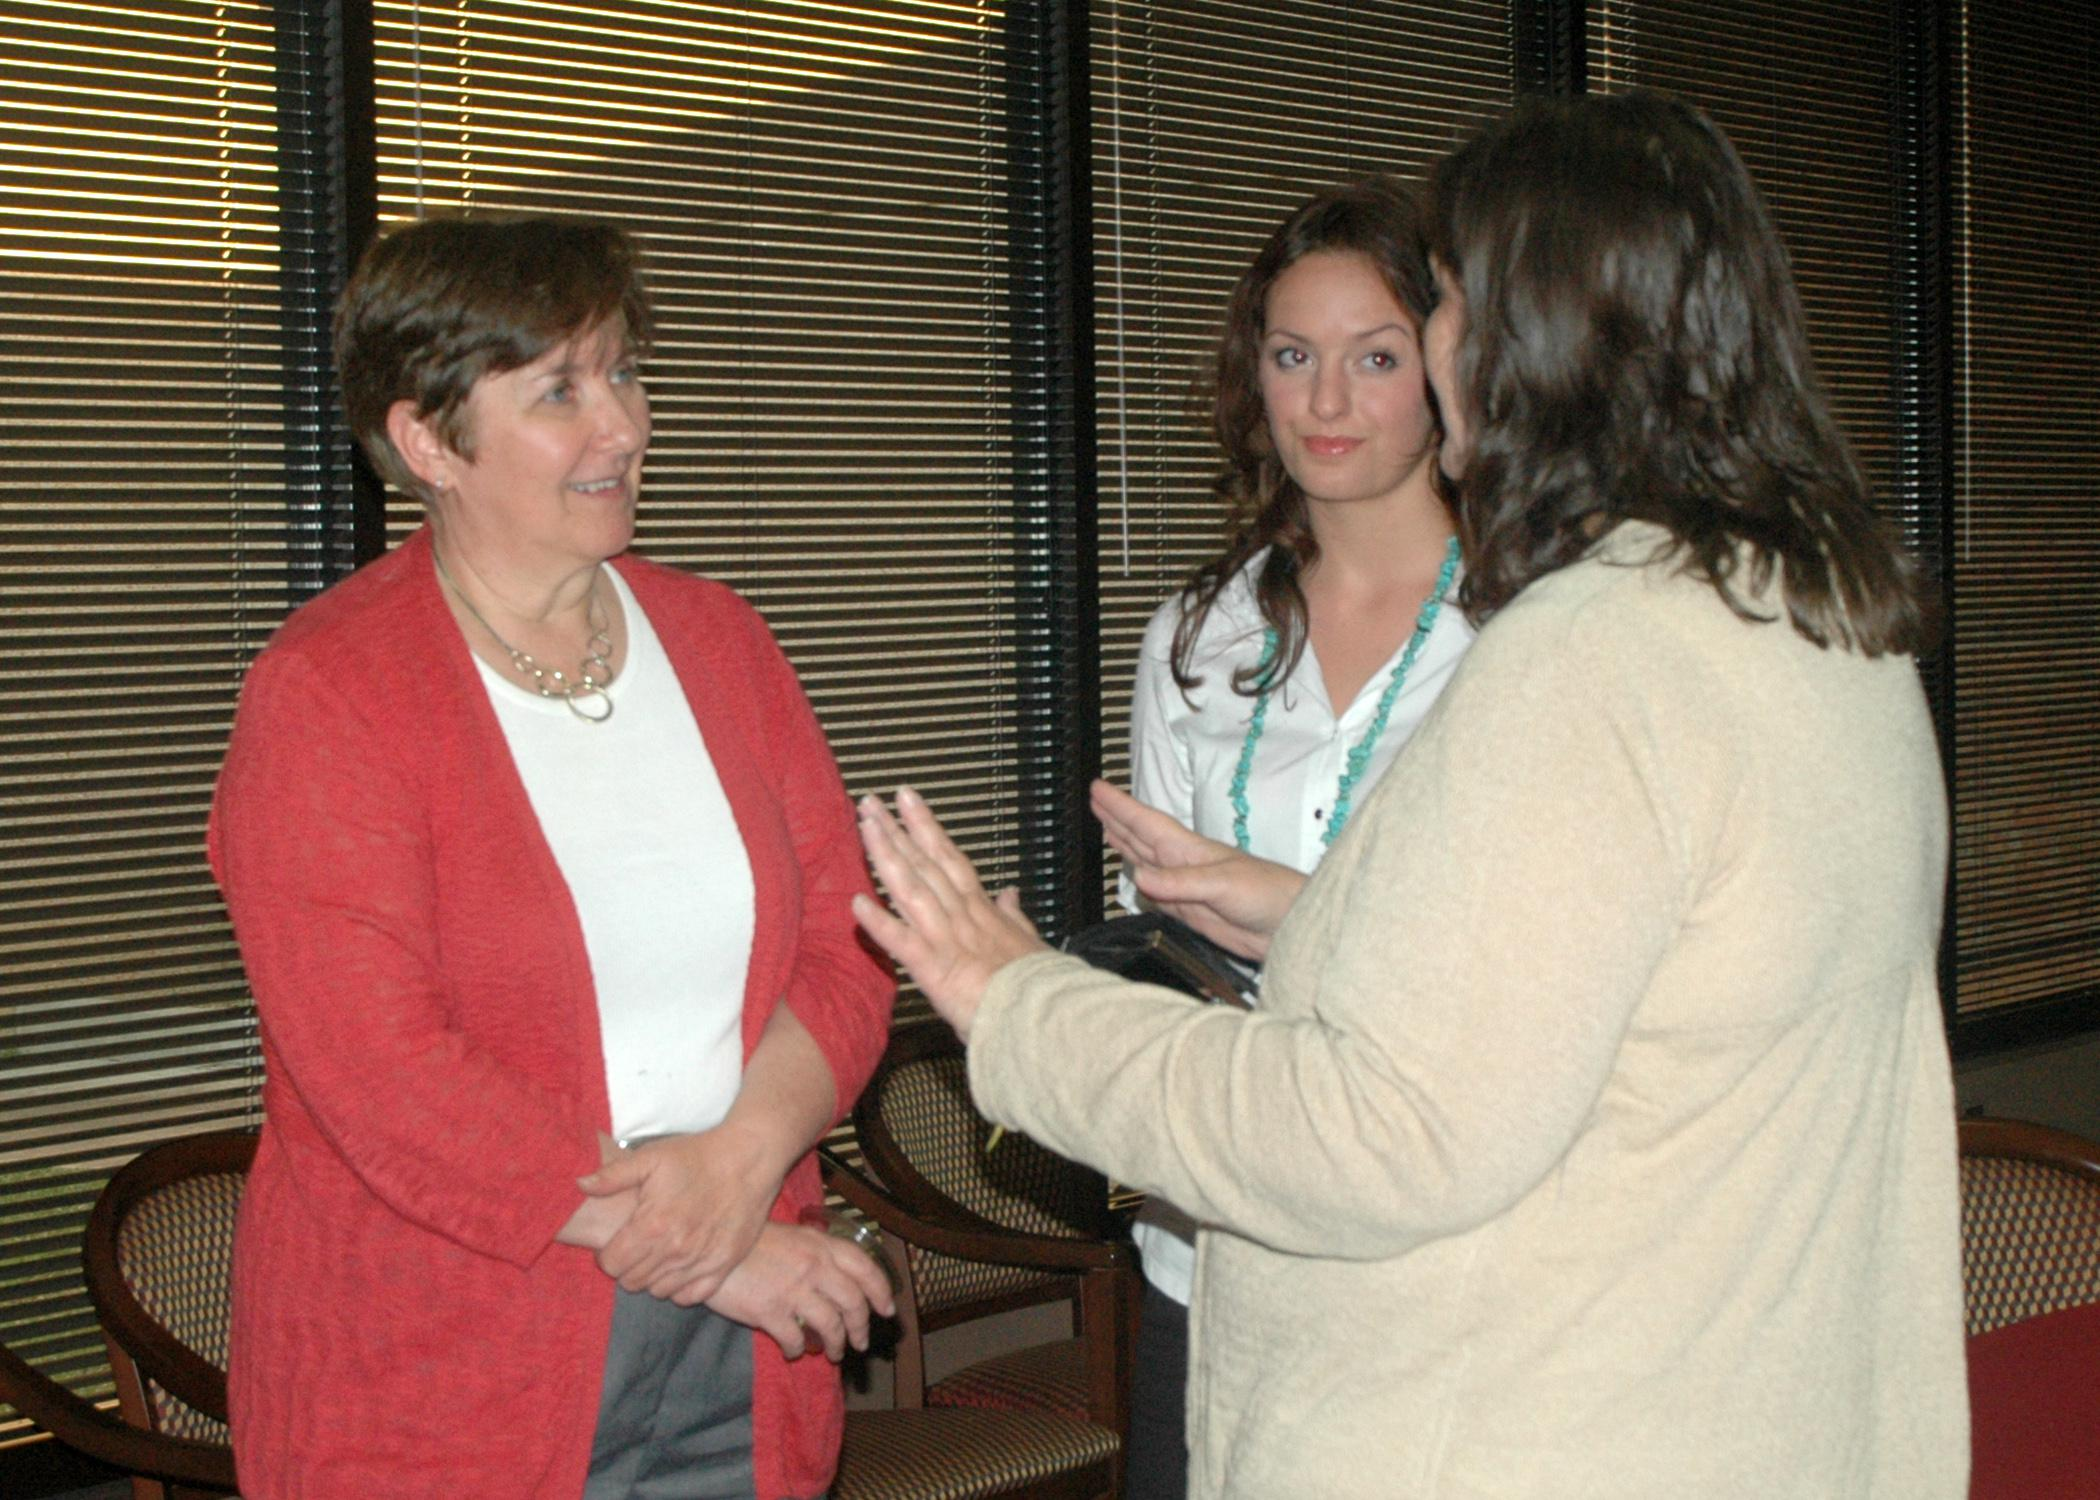 Ruth Hambleton (left), who founded Annie's Project in 2003, talks with graduates of the program May 7 at the program's 10th anniversary celebration. Annie's Project teaches females in agriculture-related fields problem-solving, record keeping and decision-making skills. (Photo by MSU Ag Communications/Susan Collins-Smith)